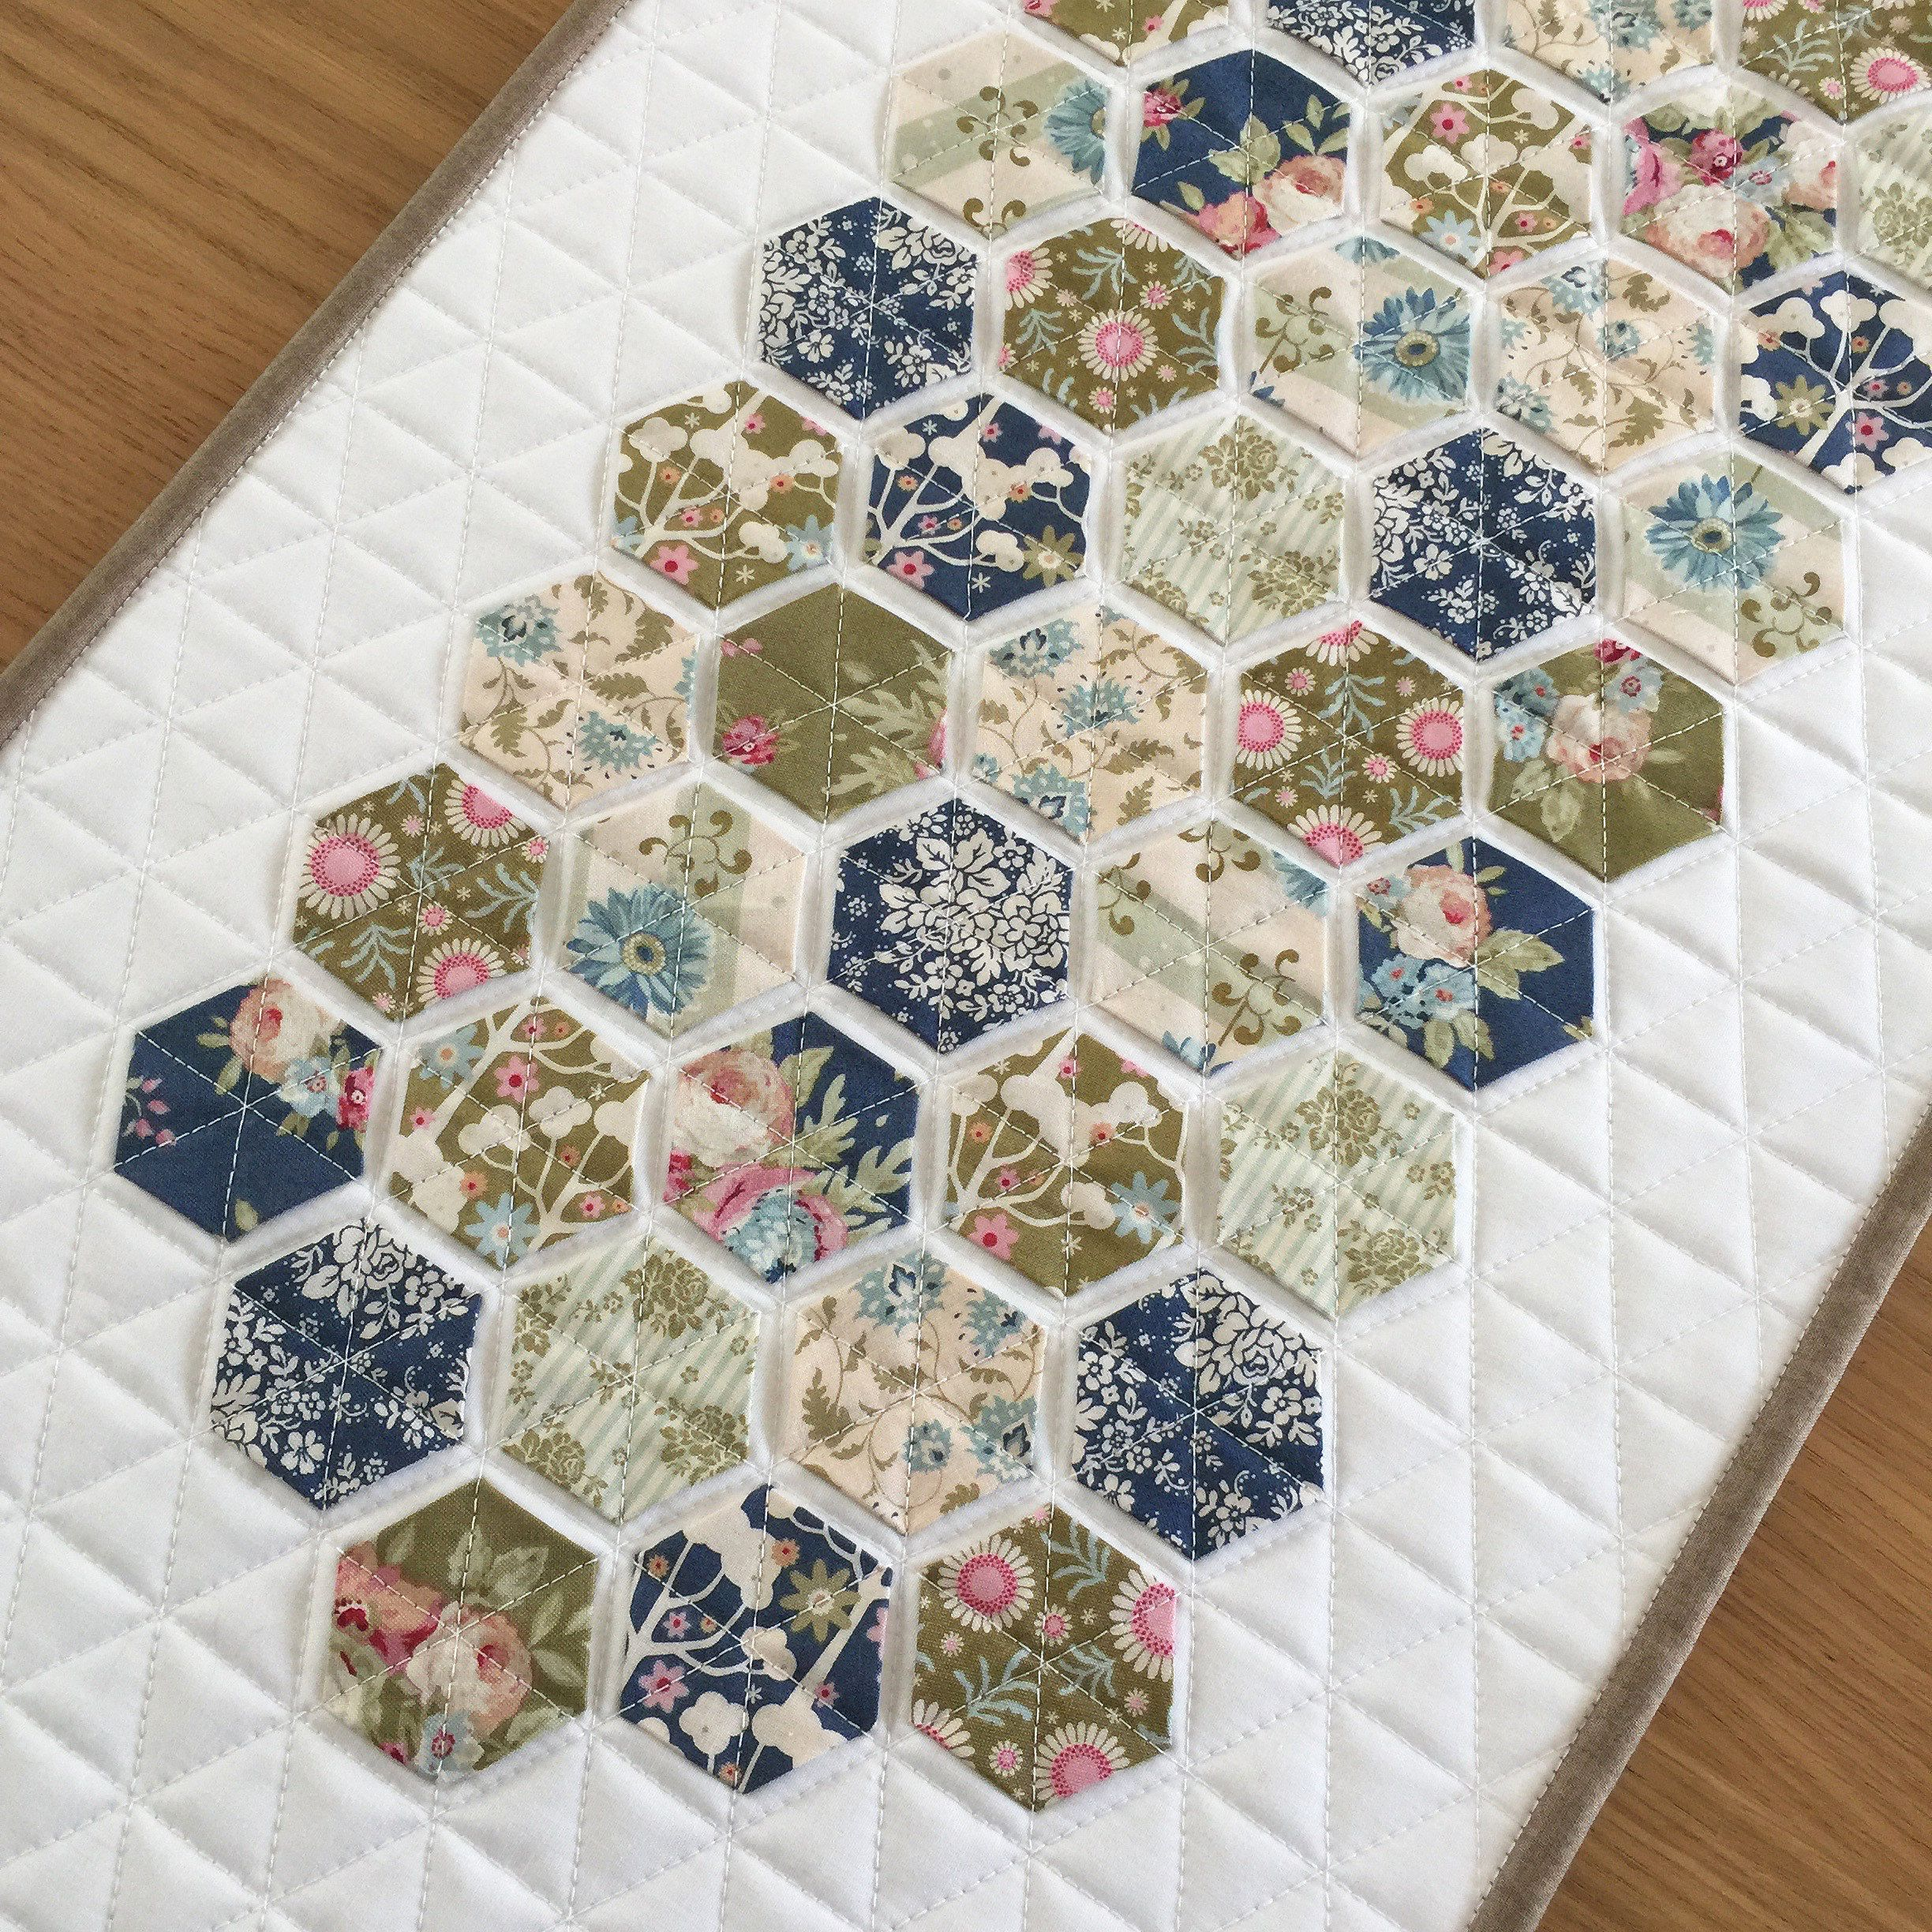 Quilt Wandbehang Hexagon Quilted Table Runner Floral Fabric Wall Hanging